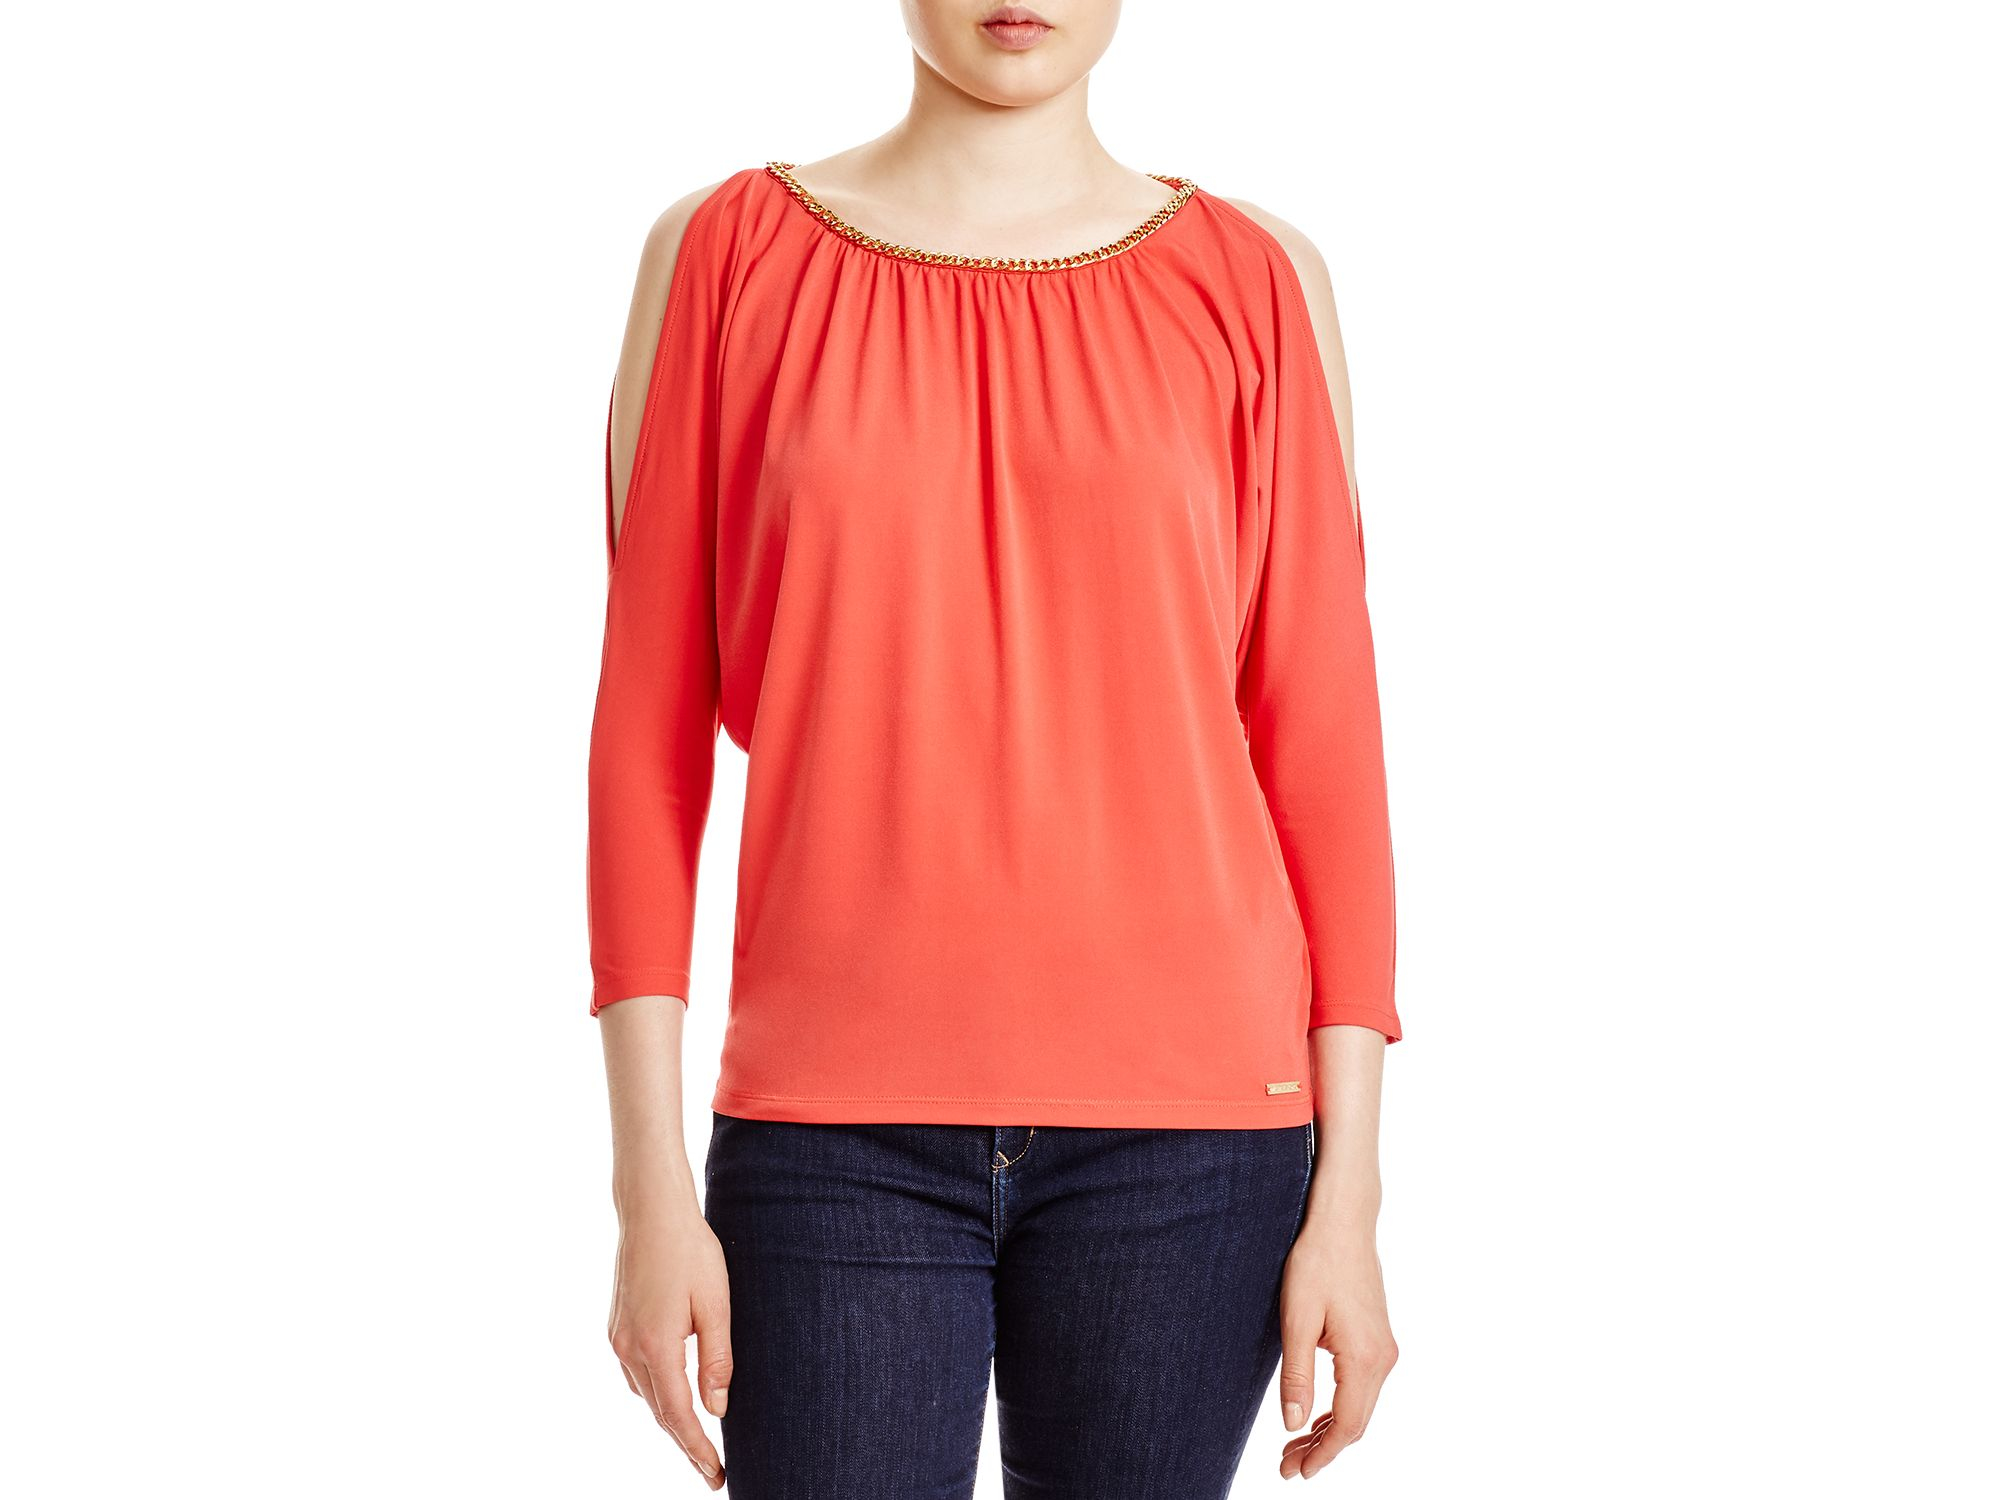 5e77e69c47f82f Lyst - Michael Michael Kors Chain Trimmed Cold Shoulder Top in Pink